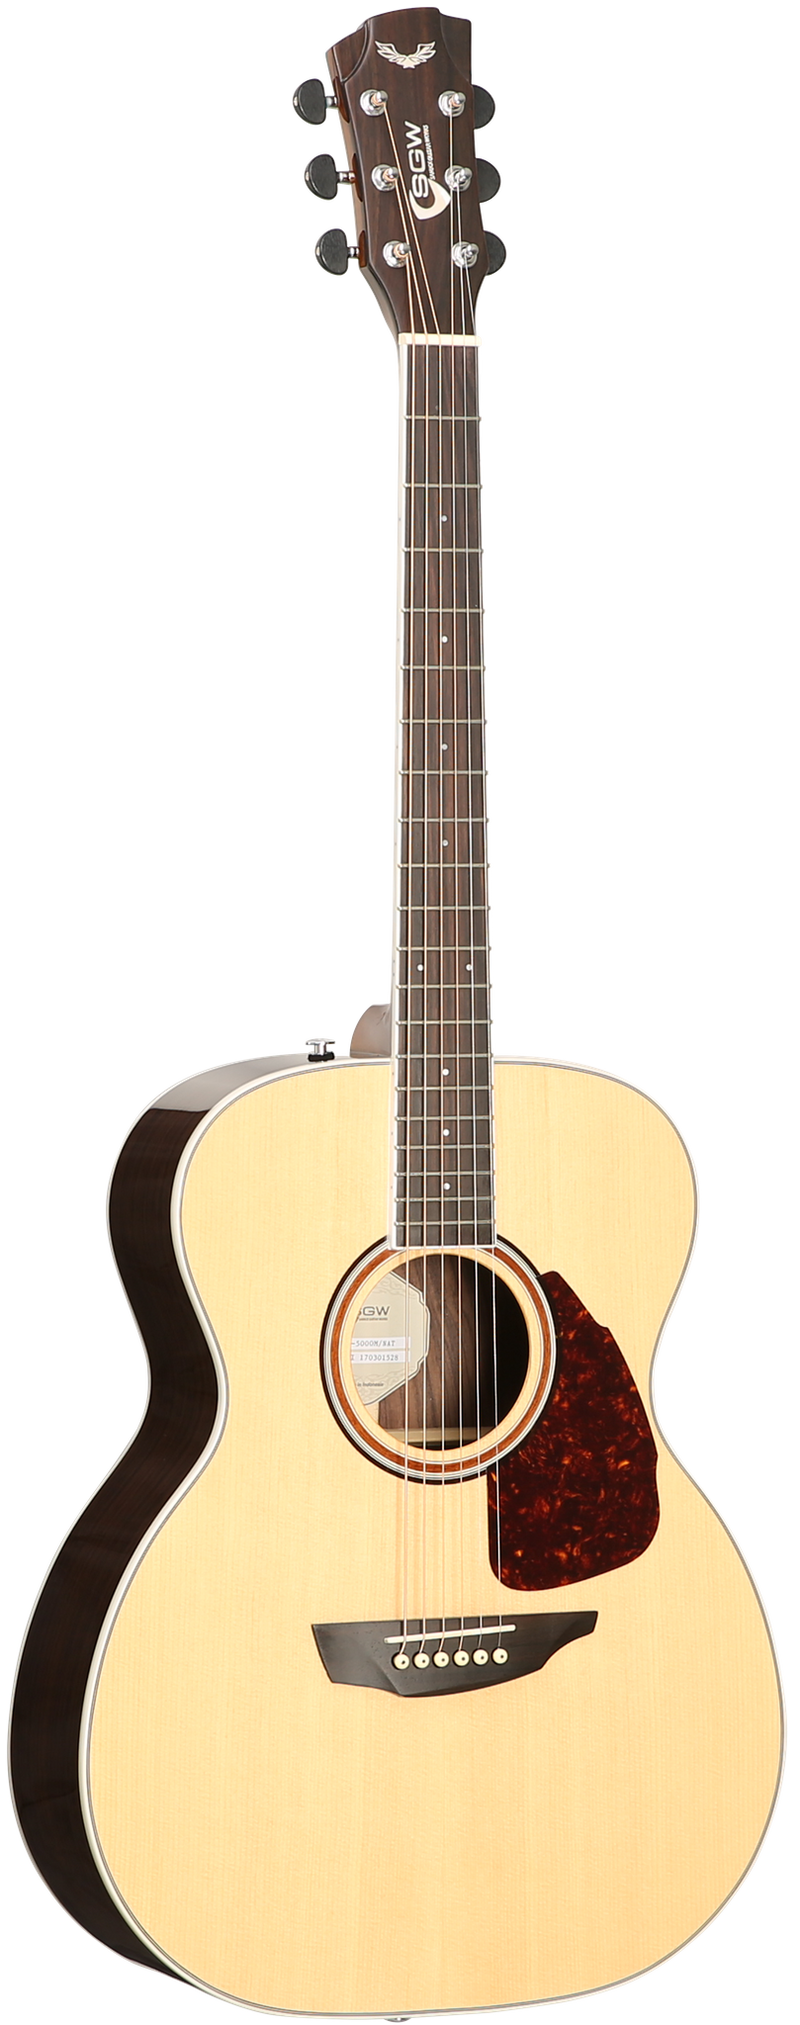 SGW Orchestra Acoustic Guitar S500OM - Five Star Music